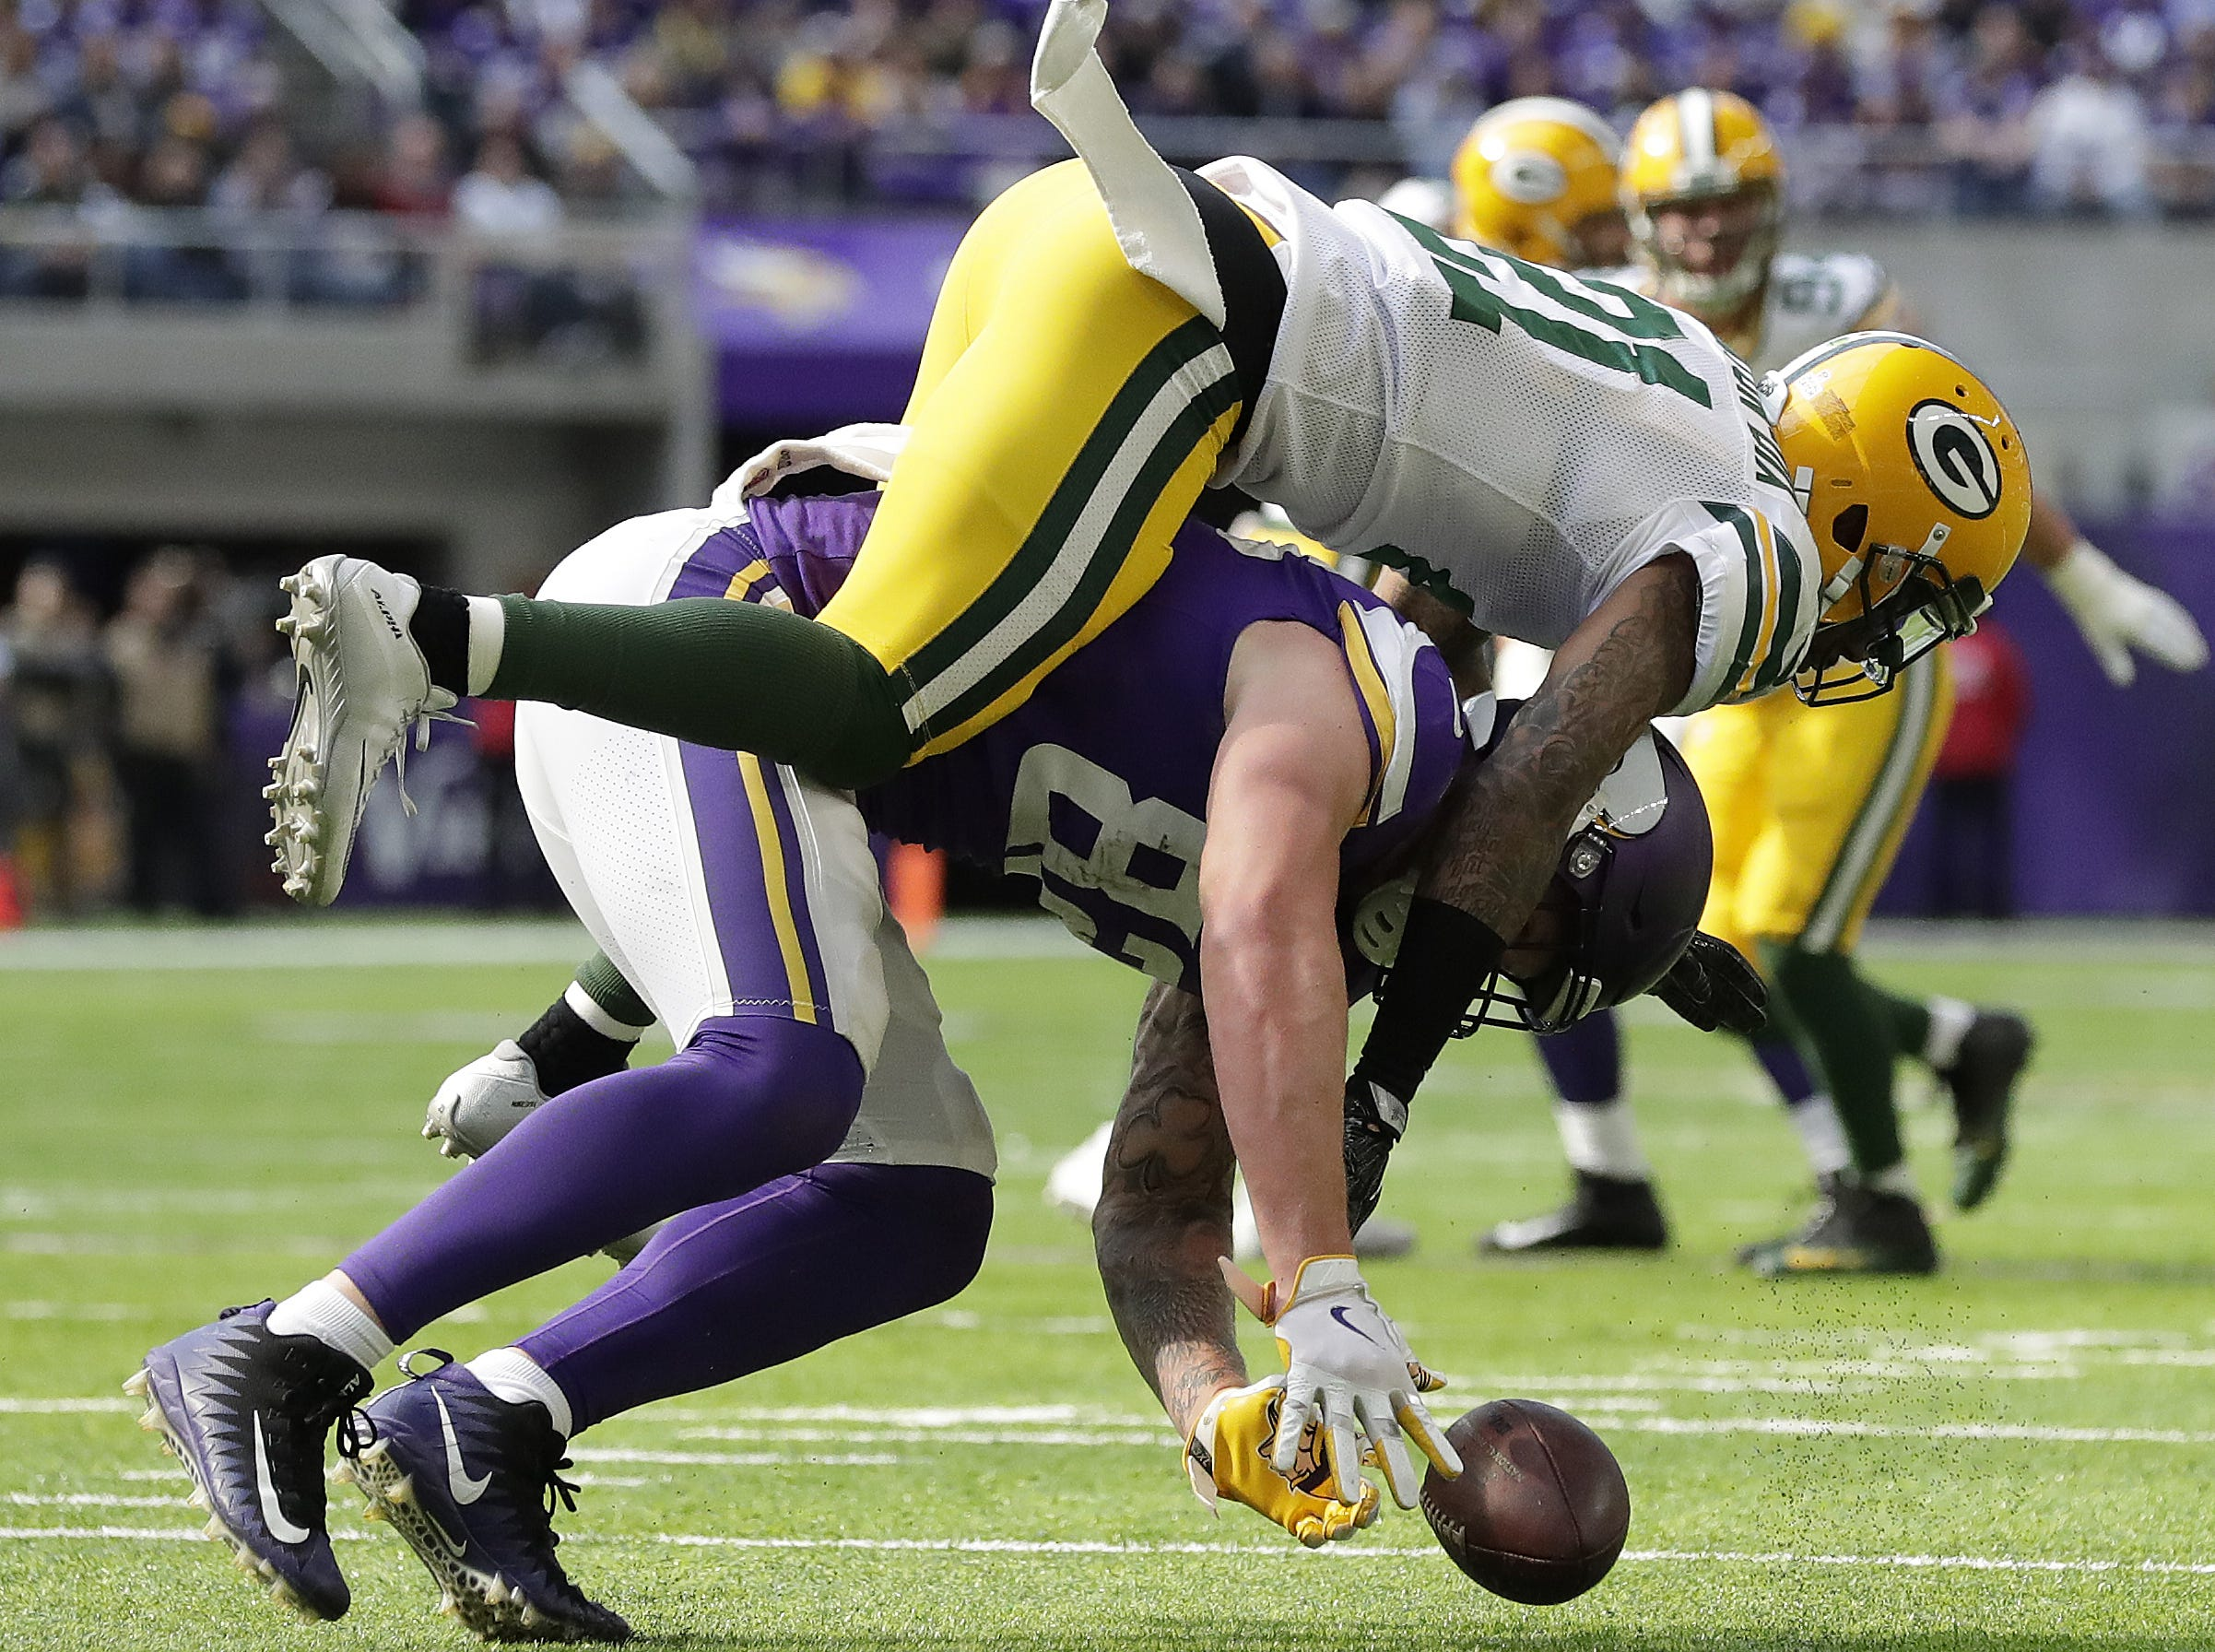 Green Bay Packers free safety Ha Ha Clinton-Dix (21) breaks up a pass to tight end Kyle Rudolph (82) against the Minnesota Vikings Sunday, October 15, 2017 in Minneapolis, Minn.